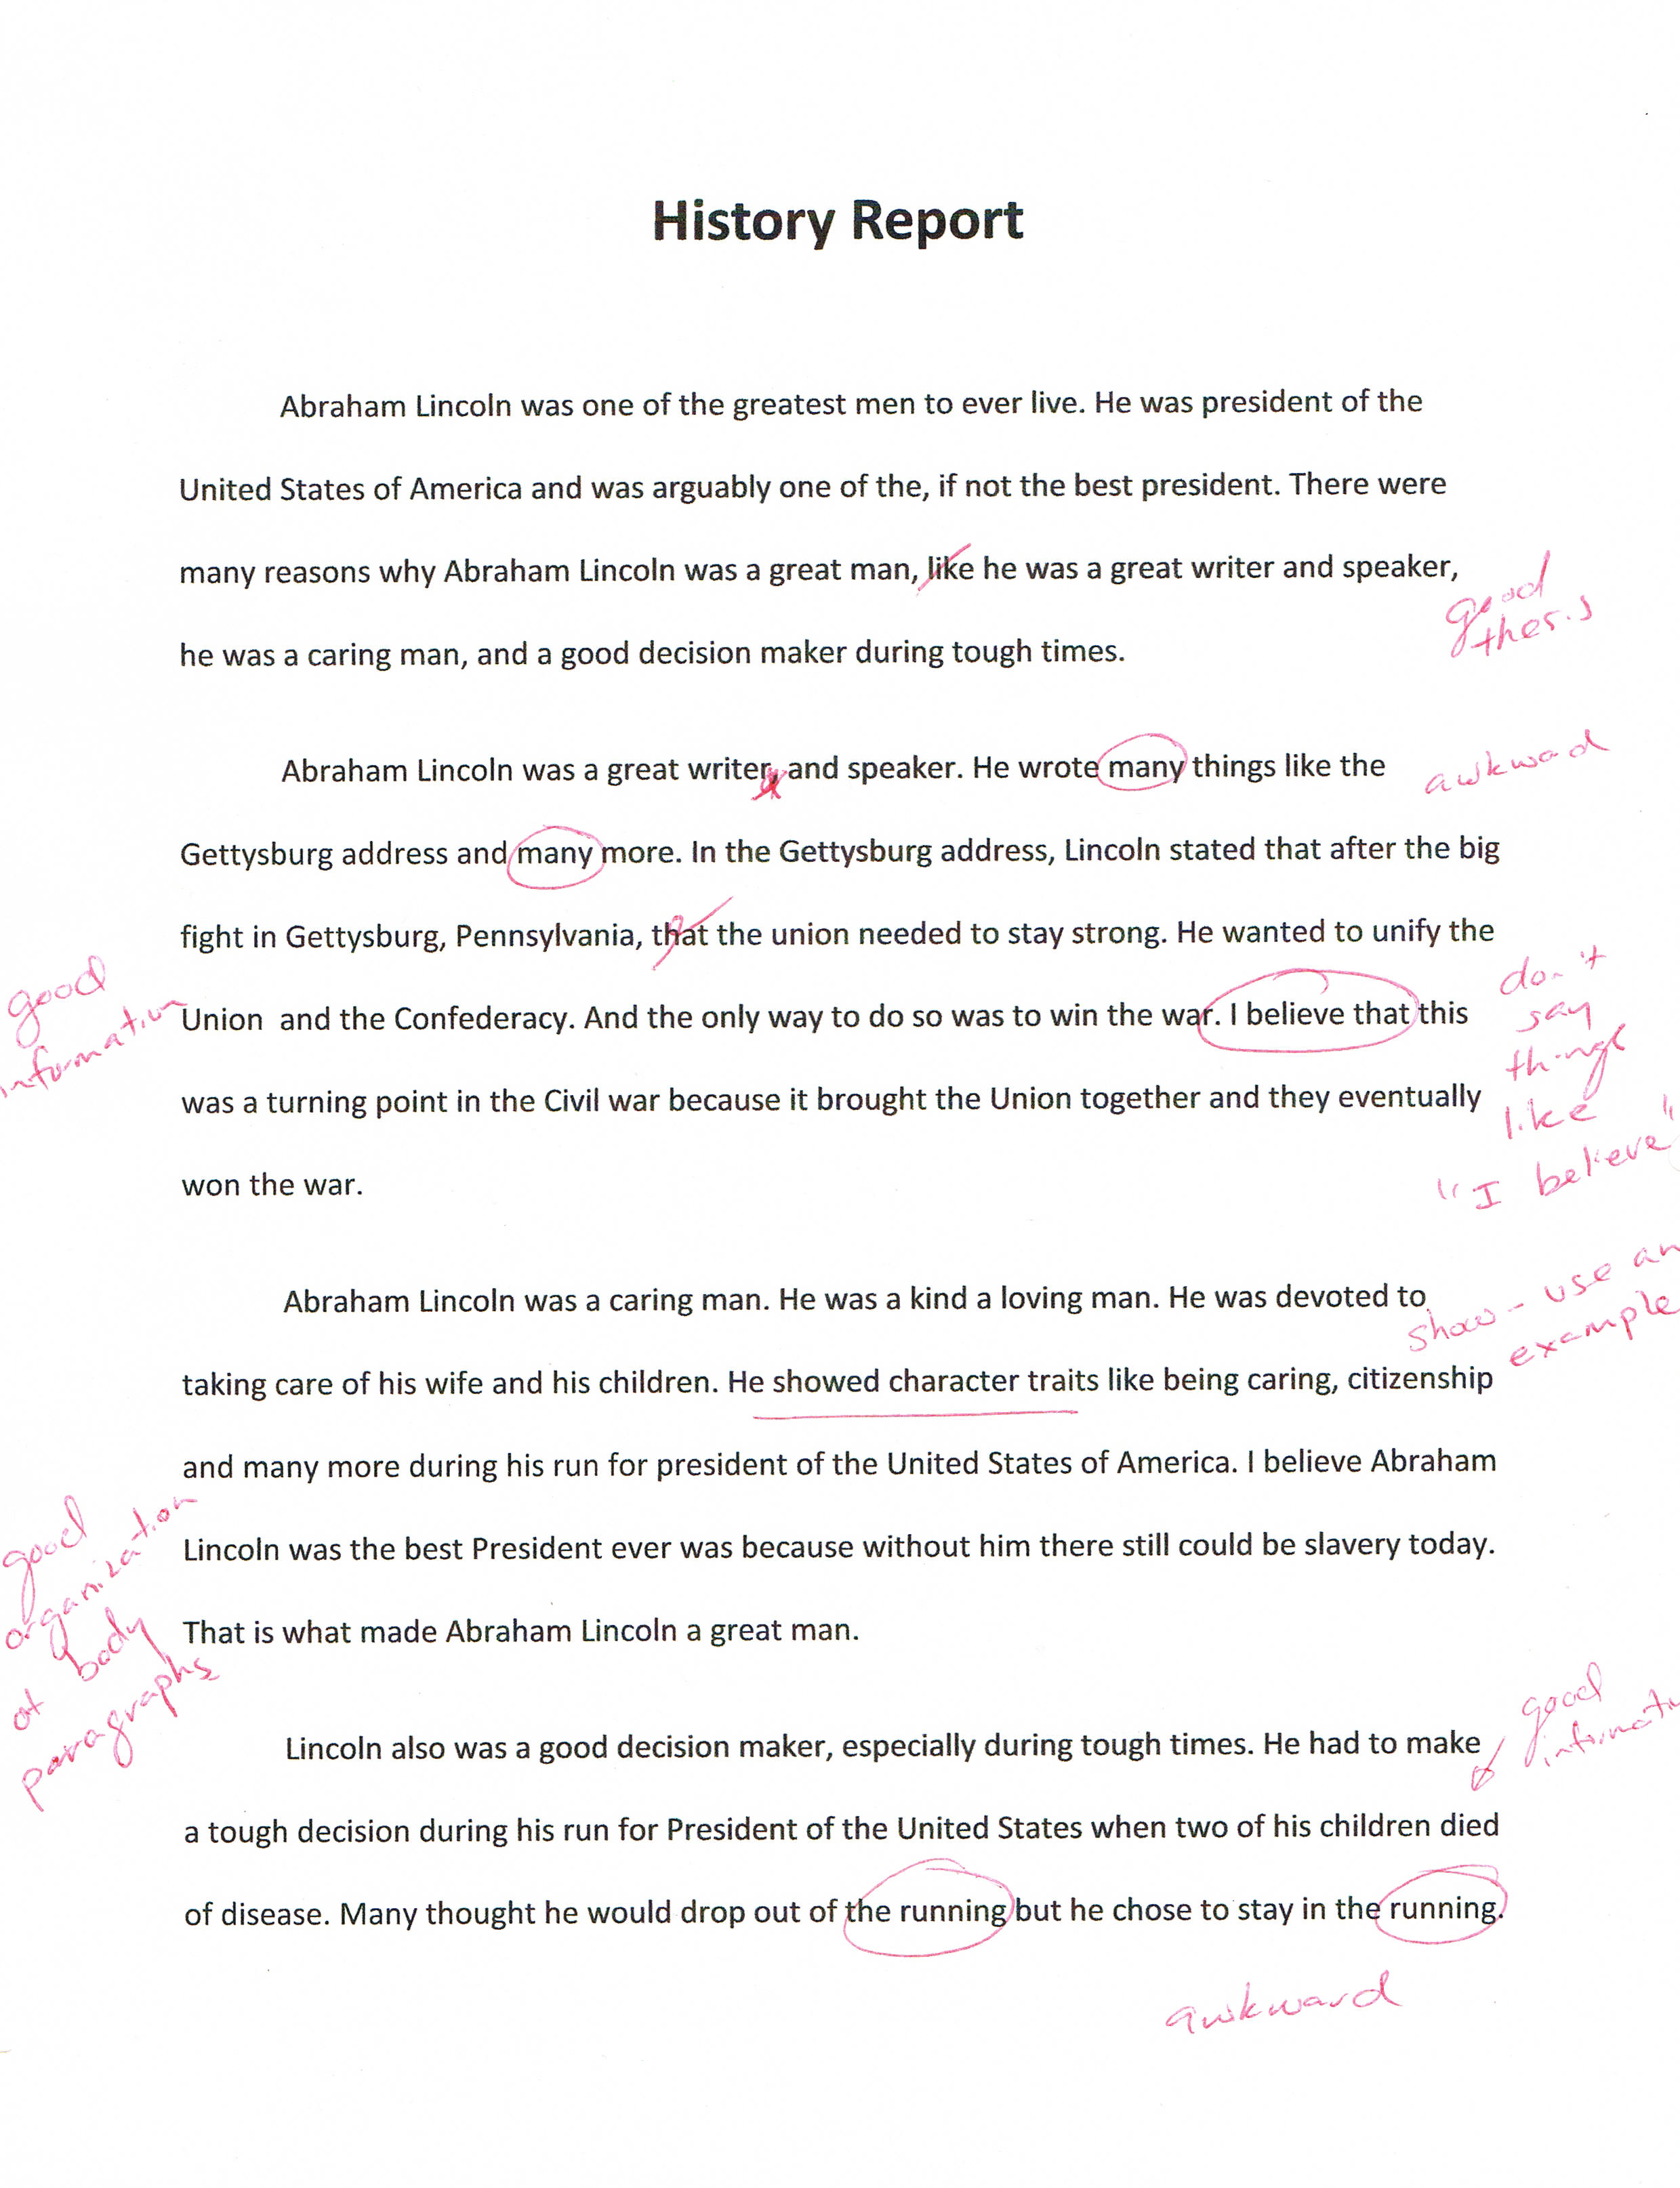 018 Essay Hook Examples Feedback Samples Archives The Tutoring Solution Interesting Hooks Formentative Essays Brockassignment Strong Good Persuasive Types Of List Sample Example Incredible For Argumentative Sentences Full